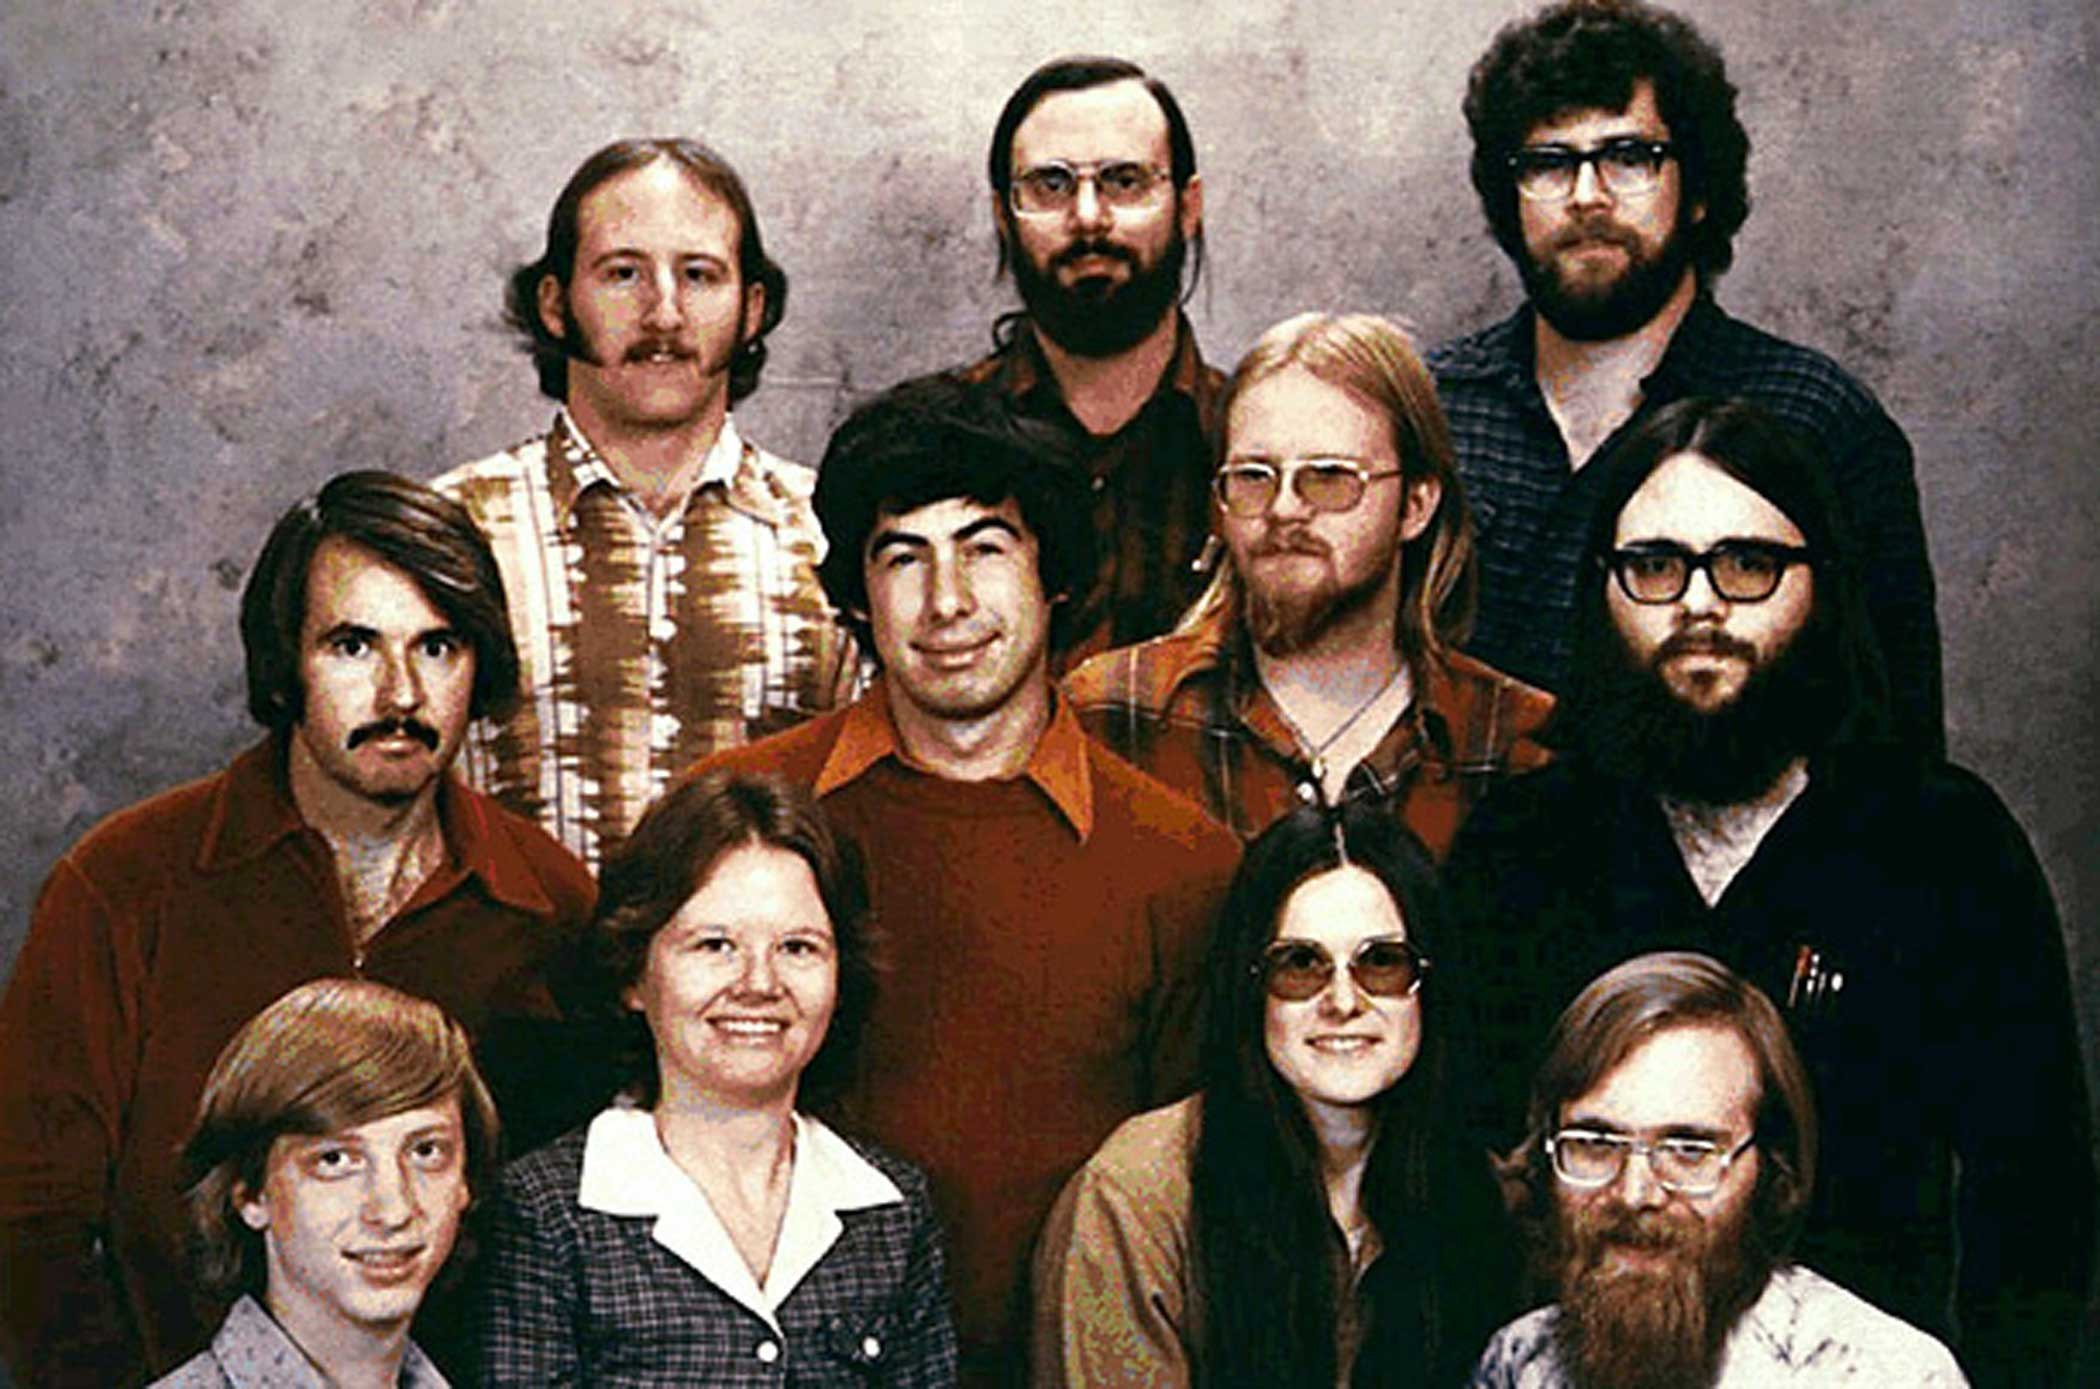 The early team at Microsoft paused for a group portrait in 1978. Gates is at the bottom left.